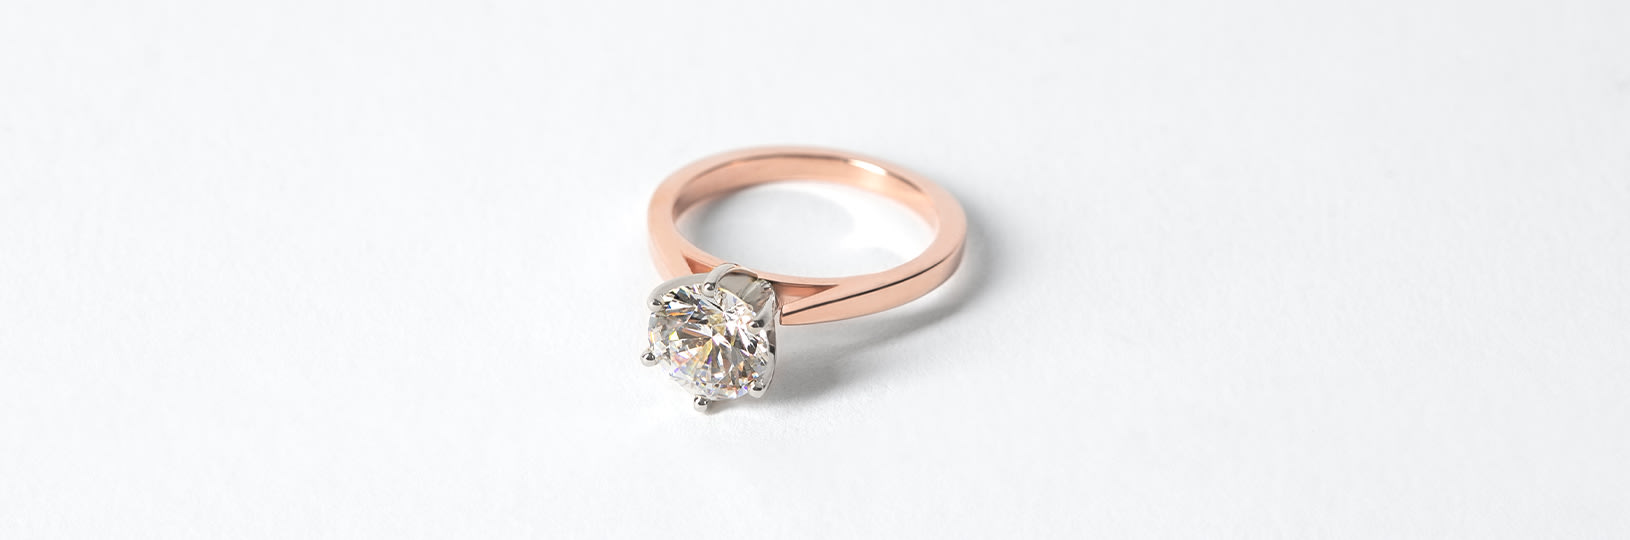 A solitaire rose gold engagement ring